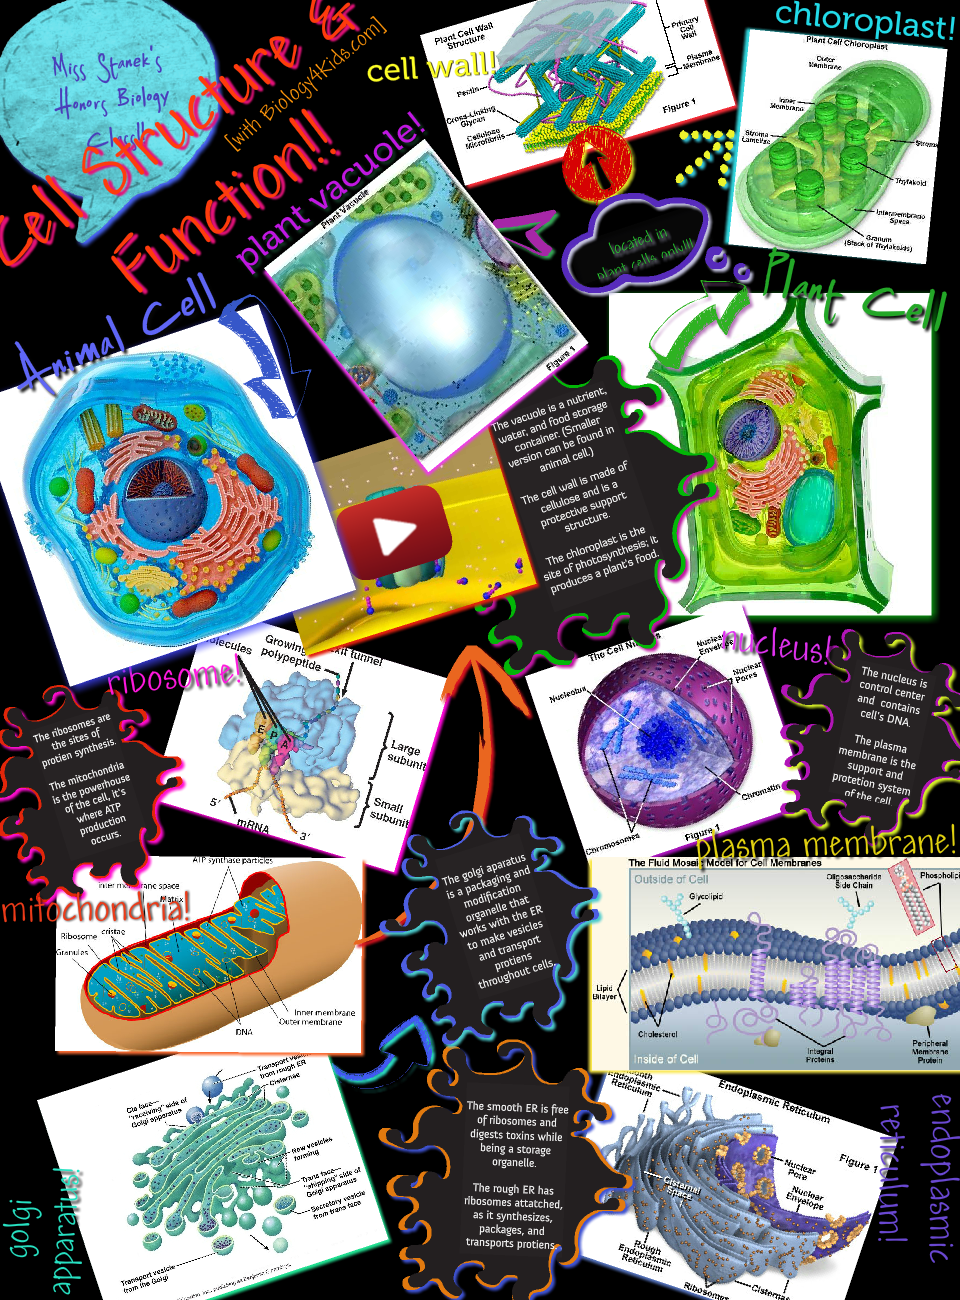 Many types of prokaryotic and eukaryotic cells have a cell wall. The cell wall acts to protect the cell mechanically and chemically from its environment, and is an additional layer of protection to the cell membrane. Different types of cell have cell walls made up of different materials; plant cell walls are primarily made up of pectin, fungi cell walls are made up of chitin and bacteria cell walls are made up of peptidoglycan. #Glogster #Biology #Cell